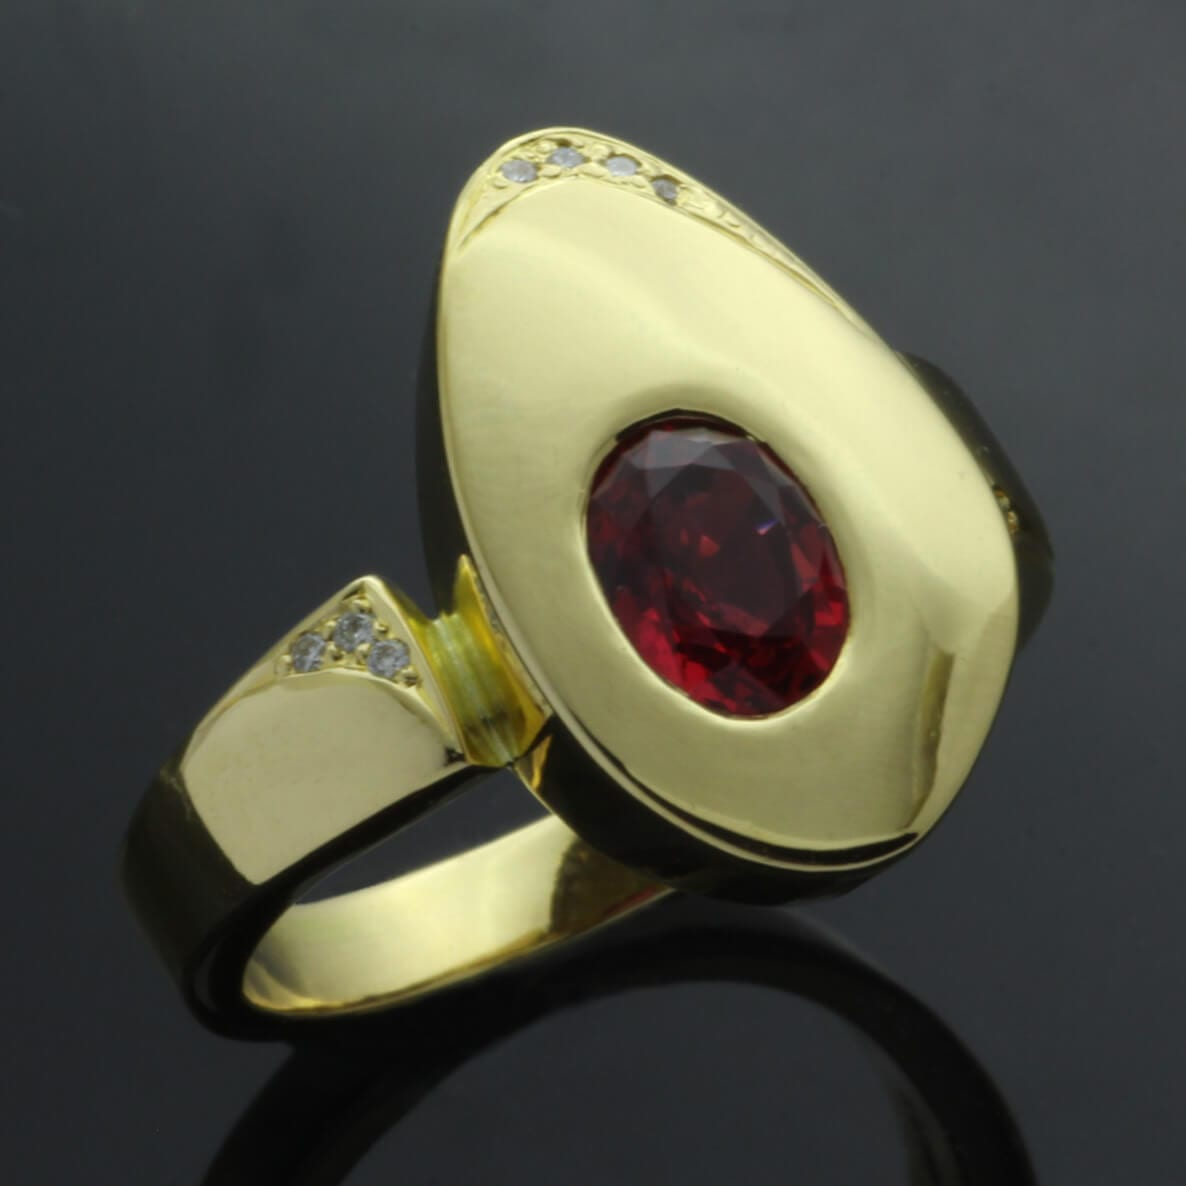 Unique modern statement ring Yellow Gold, Diamonds and Oval cut Red Spinel gem